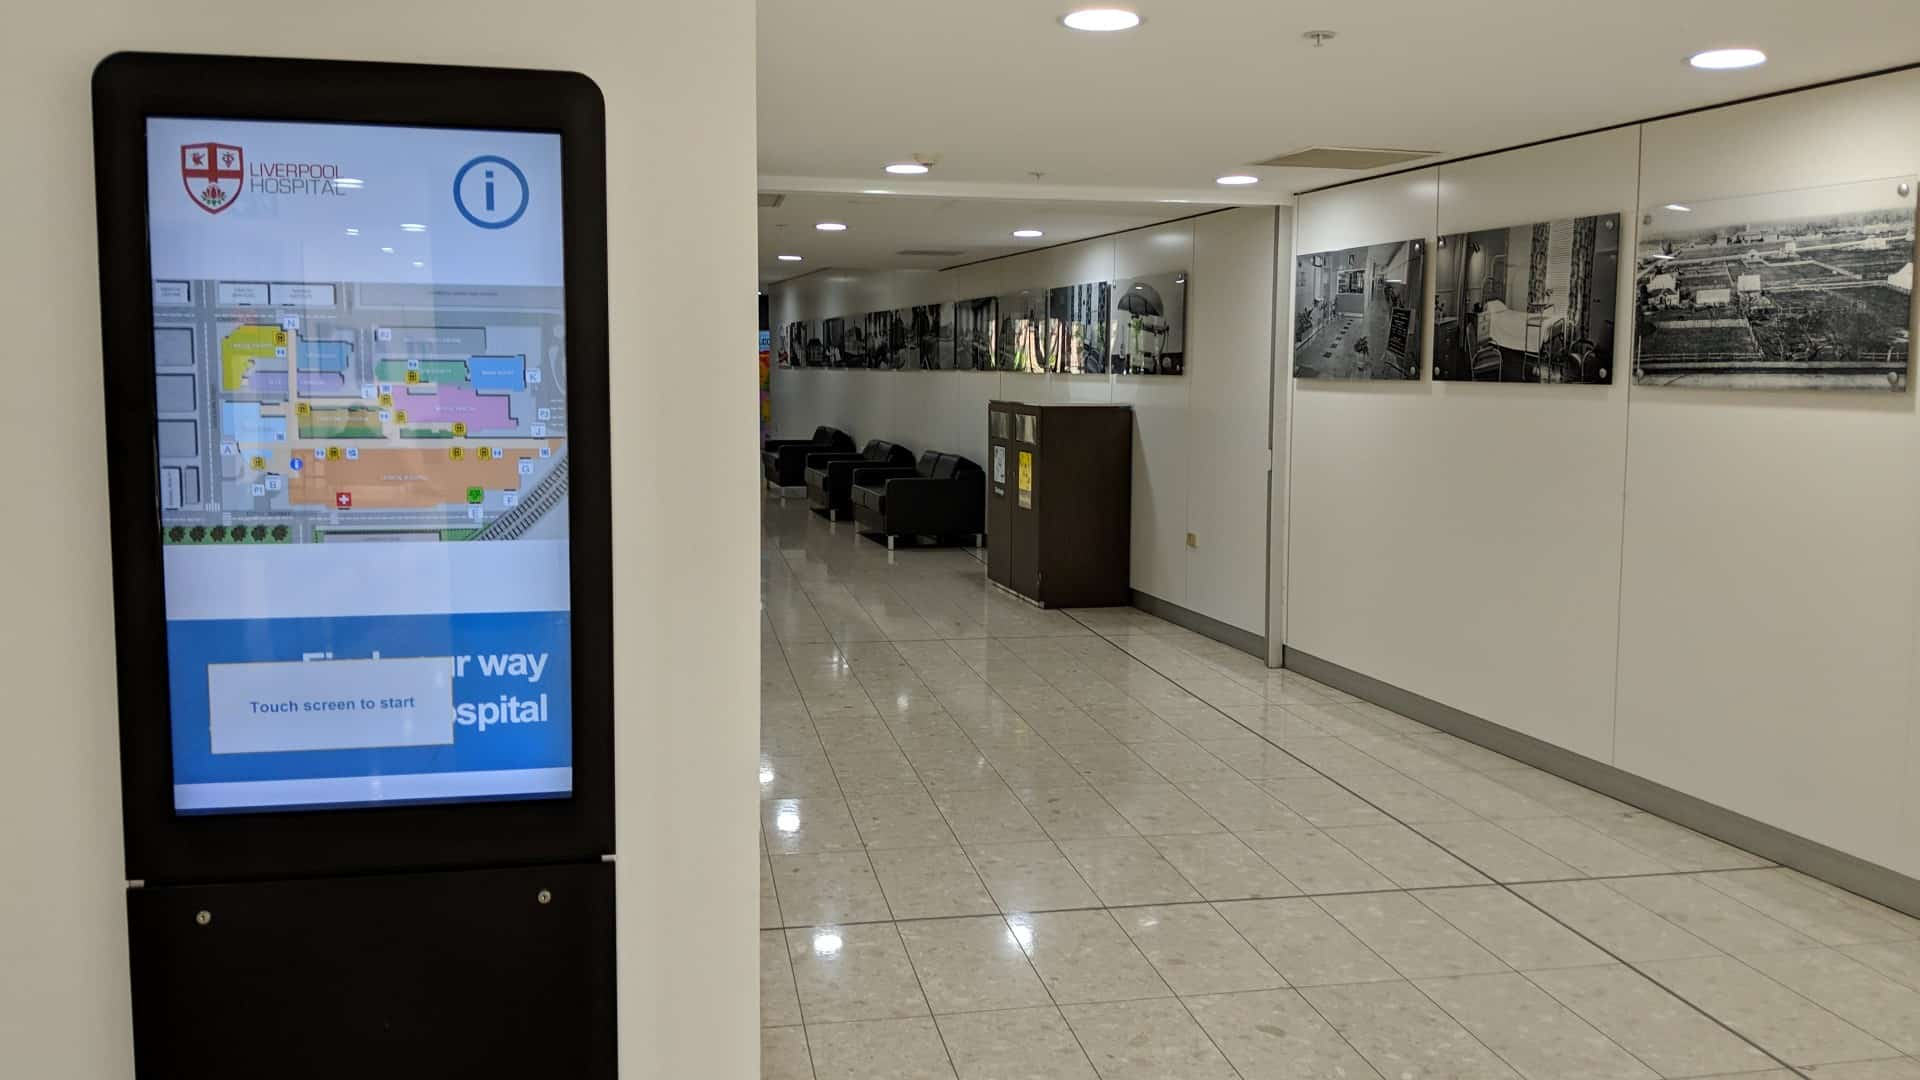 Digital Wayfinding – Liverpool Hospital